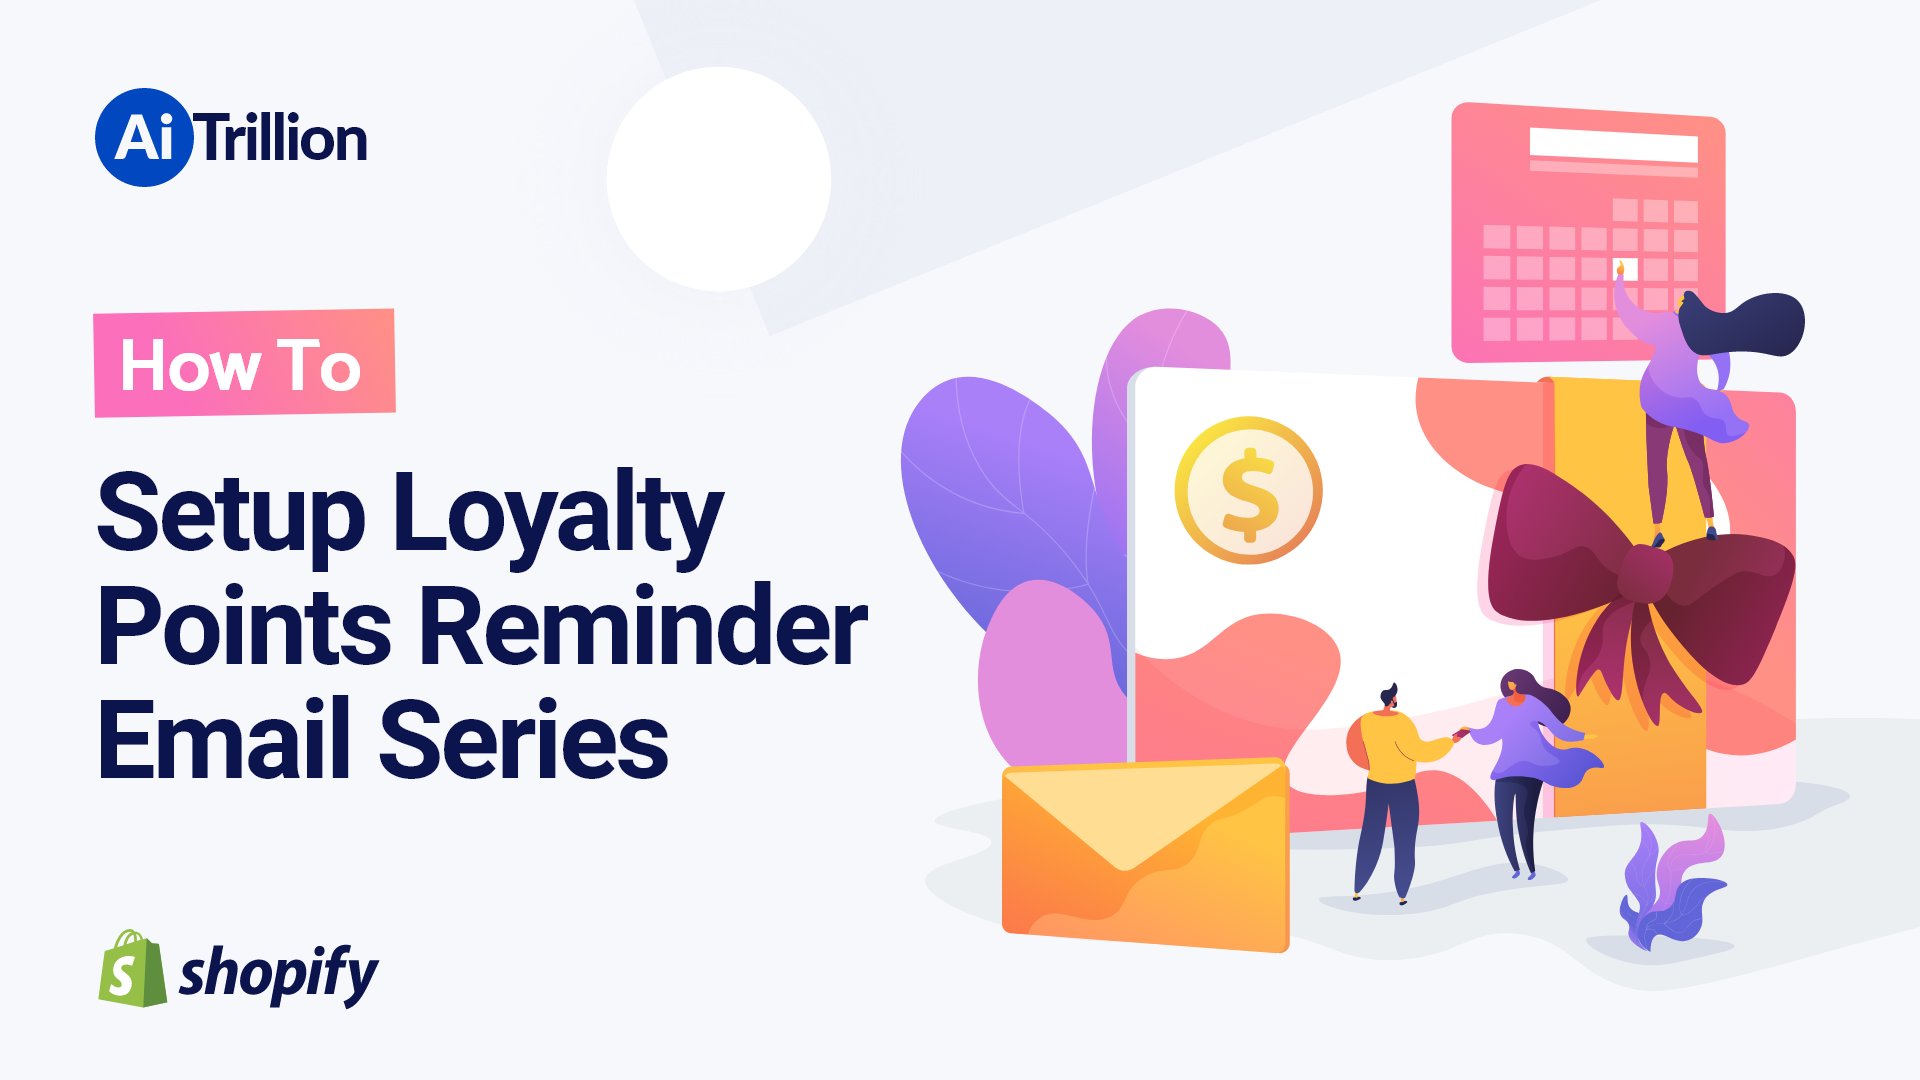 How To Setup Loyalty Points Reminder Email Series